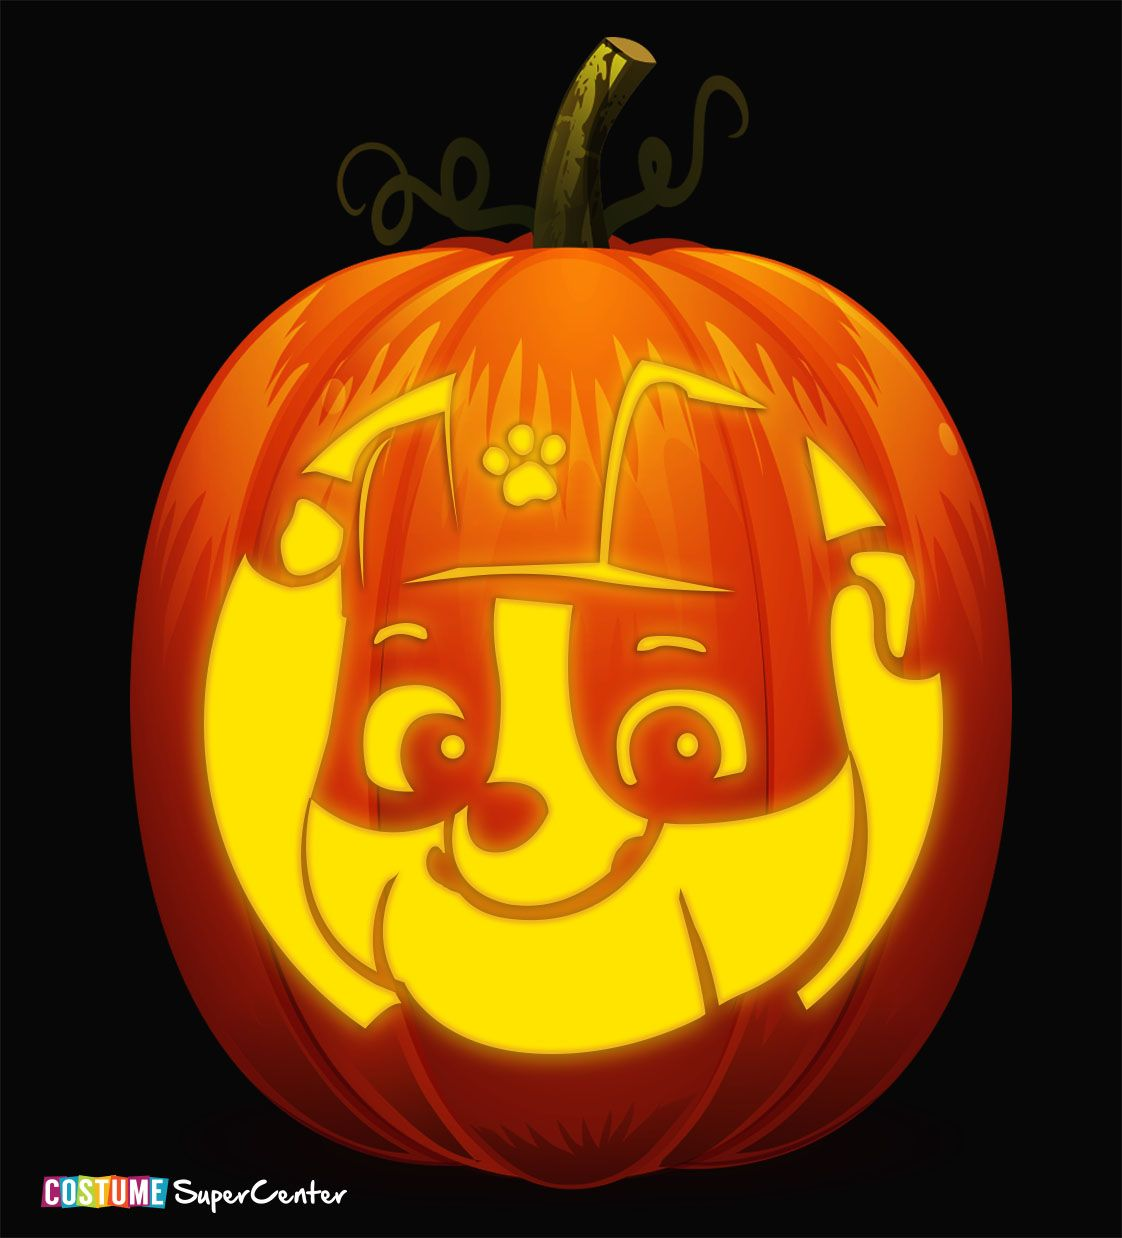 FREE Paw Patrol Pumpkin Stencils - Paw patrol pumpkin stencil, Pumpkin stencil, Pumpkin carving, Pumpkin, Pumpkin carvings stencils, Rubble paw patrol - Fetch the squad and get ready to search for the best pumpkin in the patch  Why, you ask  Because we've got some free pumpkin carving stencils that will save the day  When you're patroll…